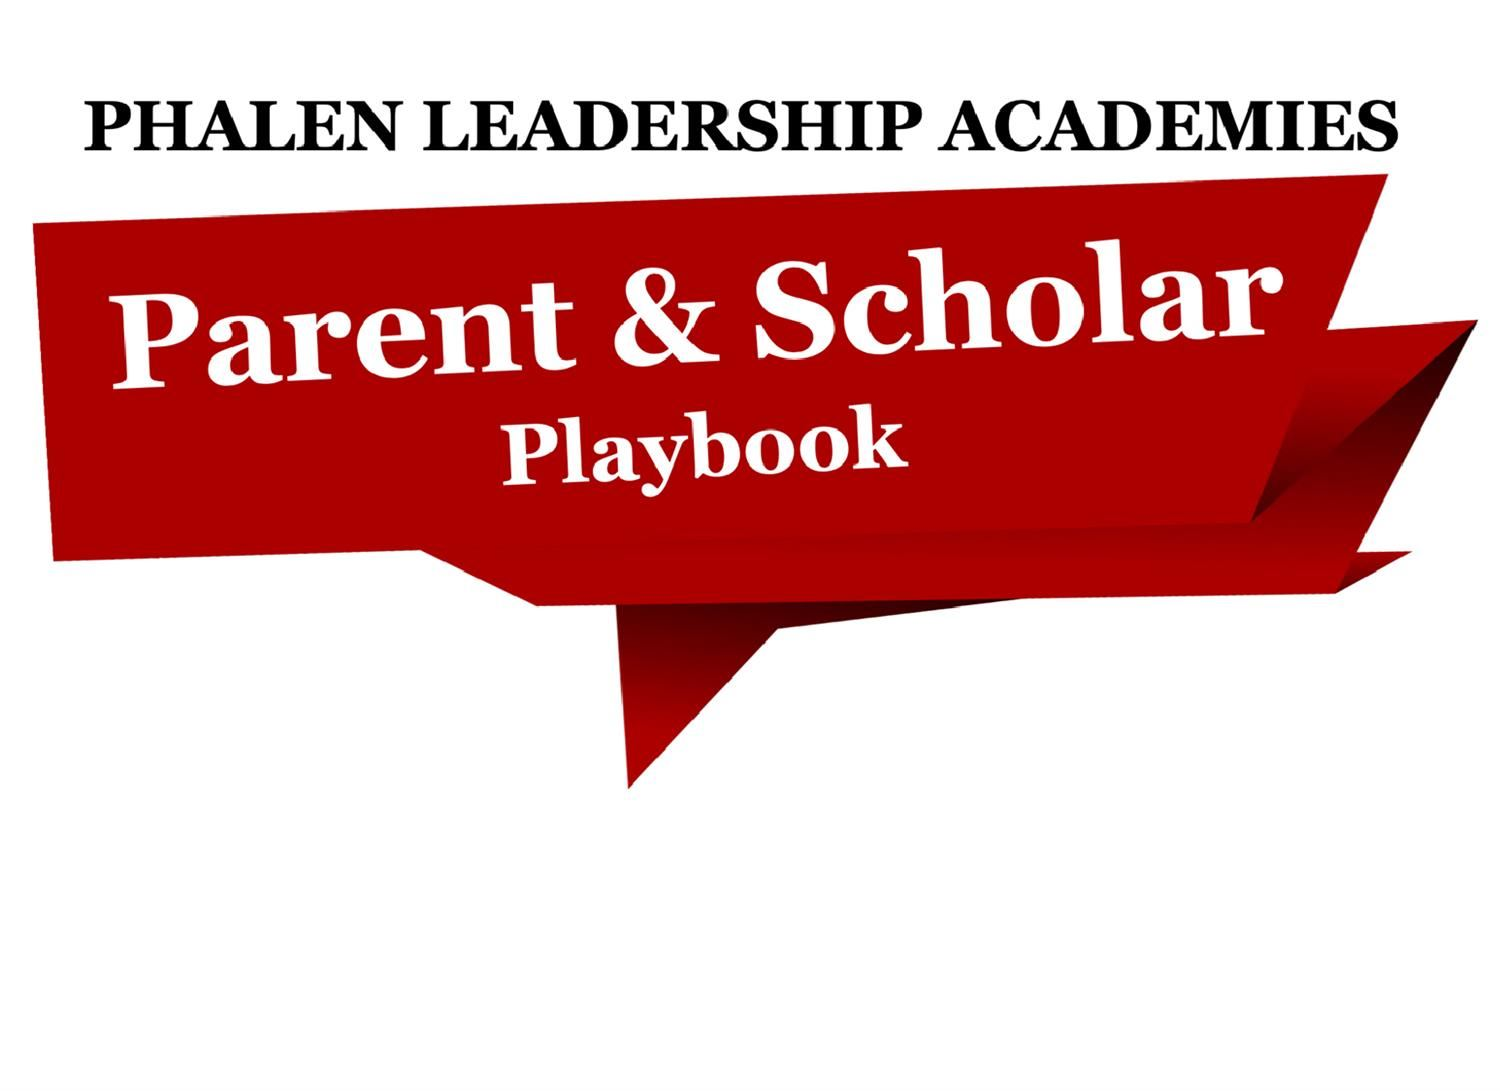 Phalen Leadership Academies at Thea Bowman